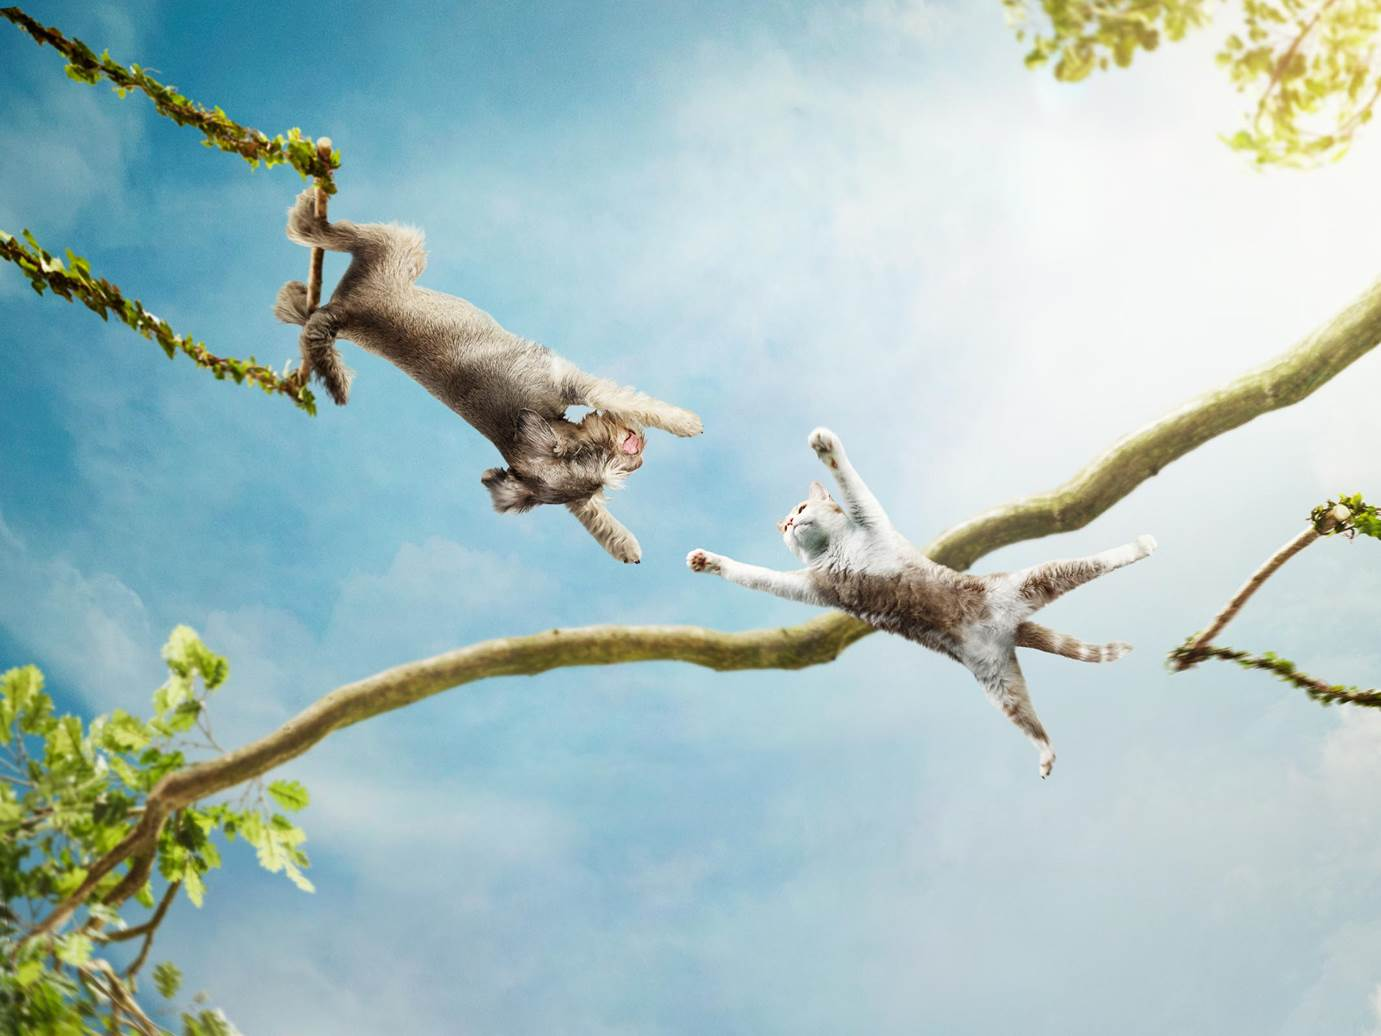 Alex Howe animals dog cat swinging in tree acrobatics retouch